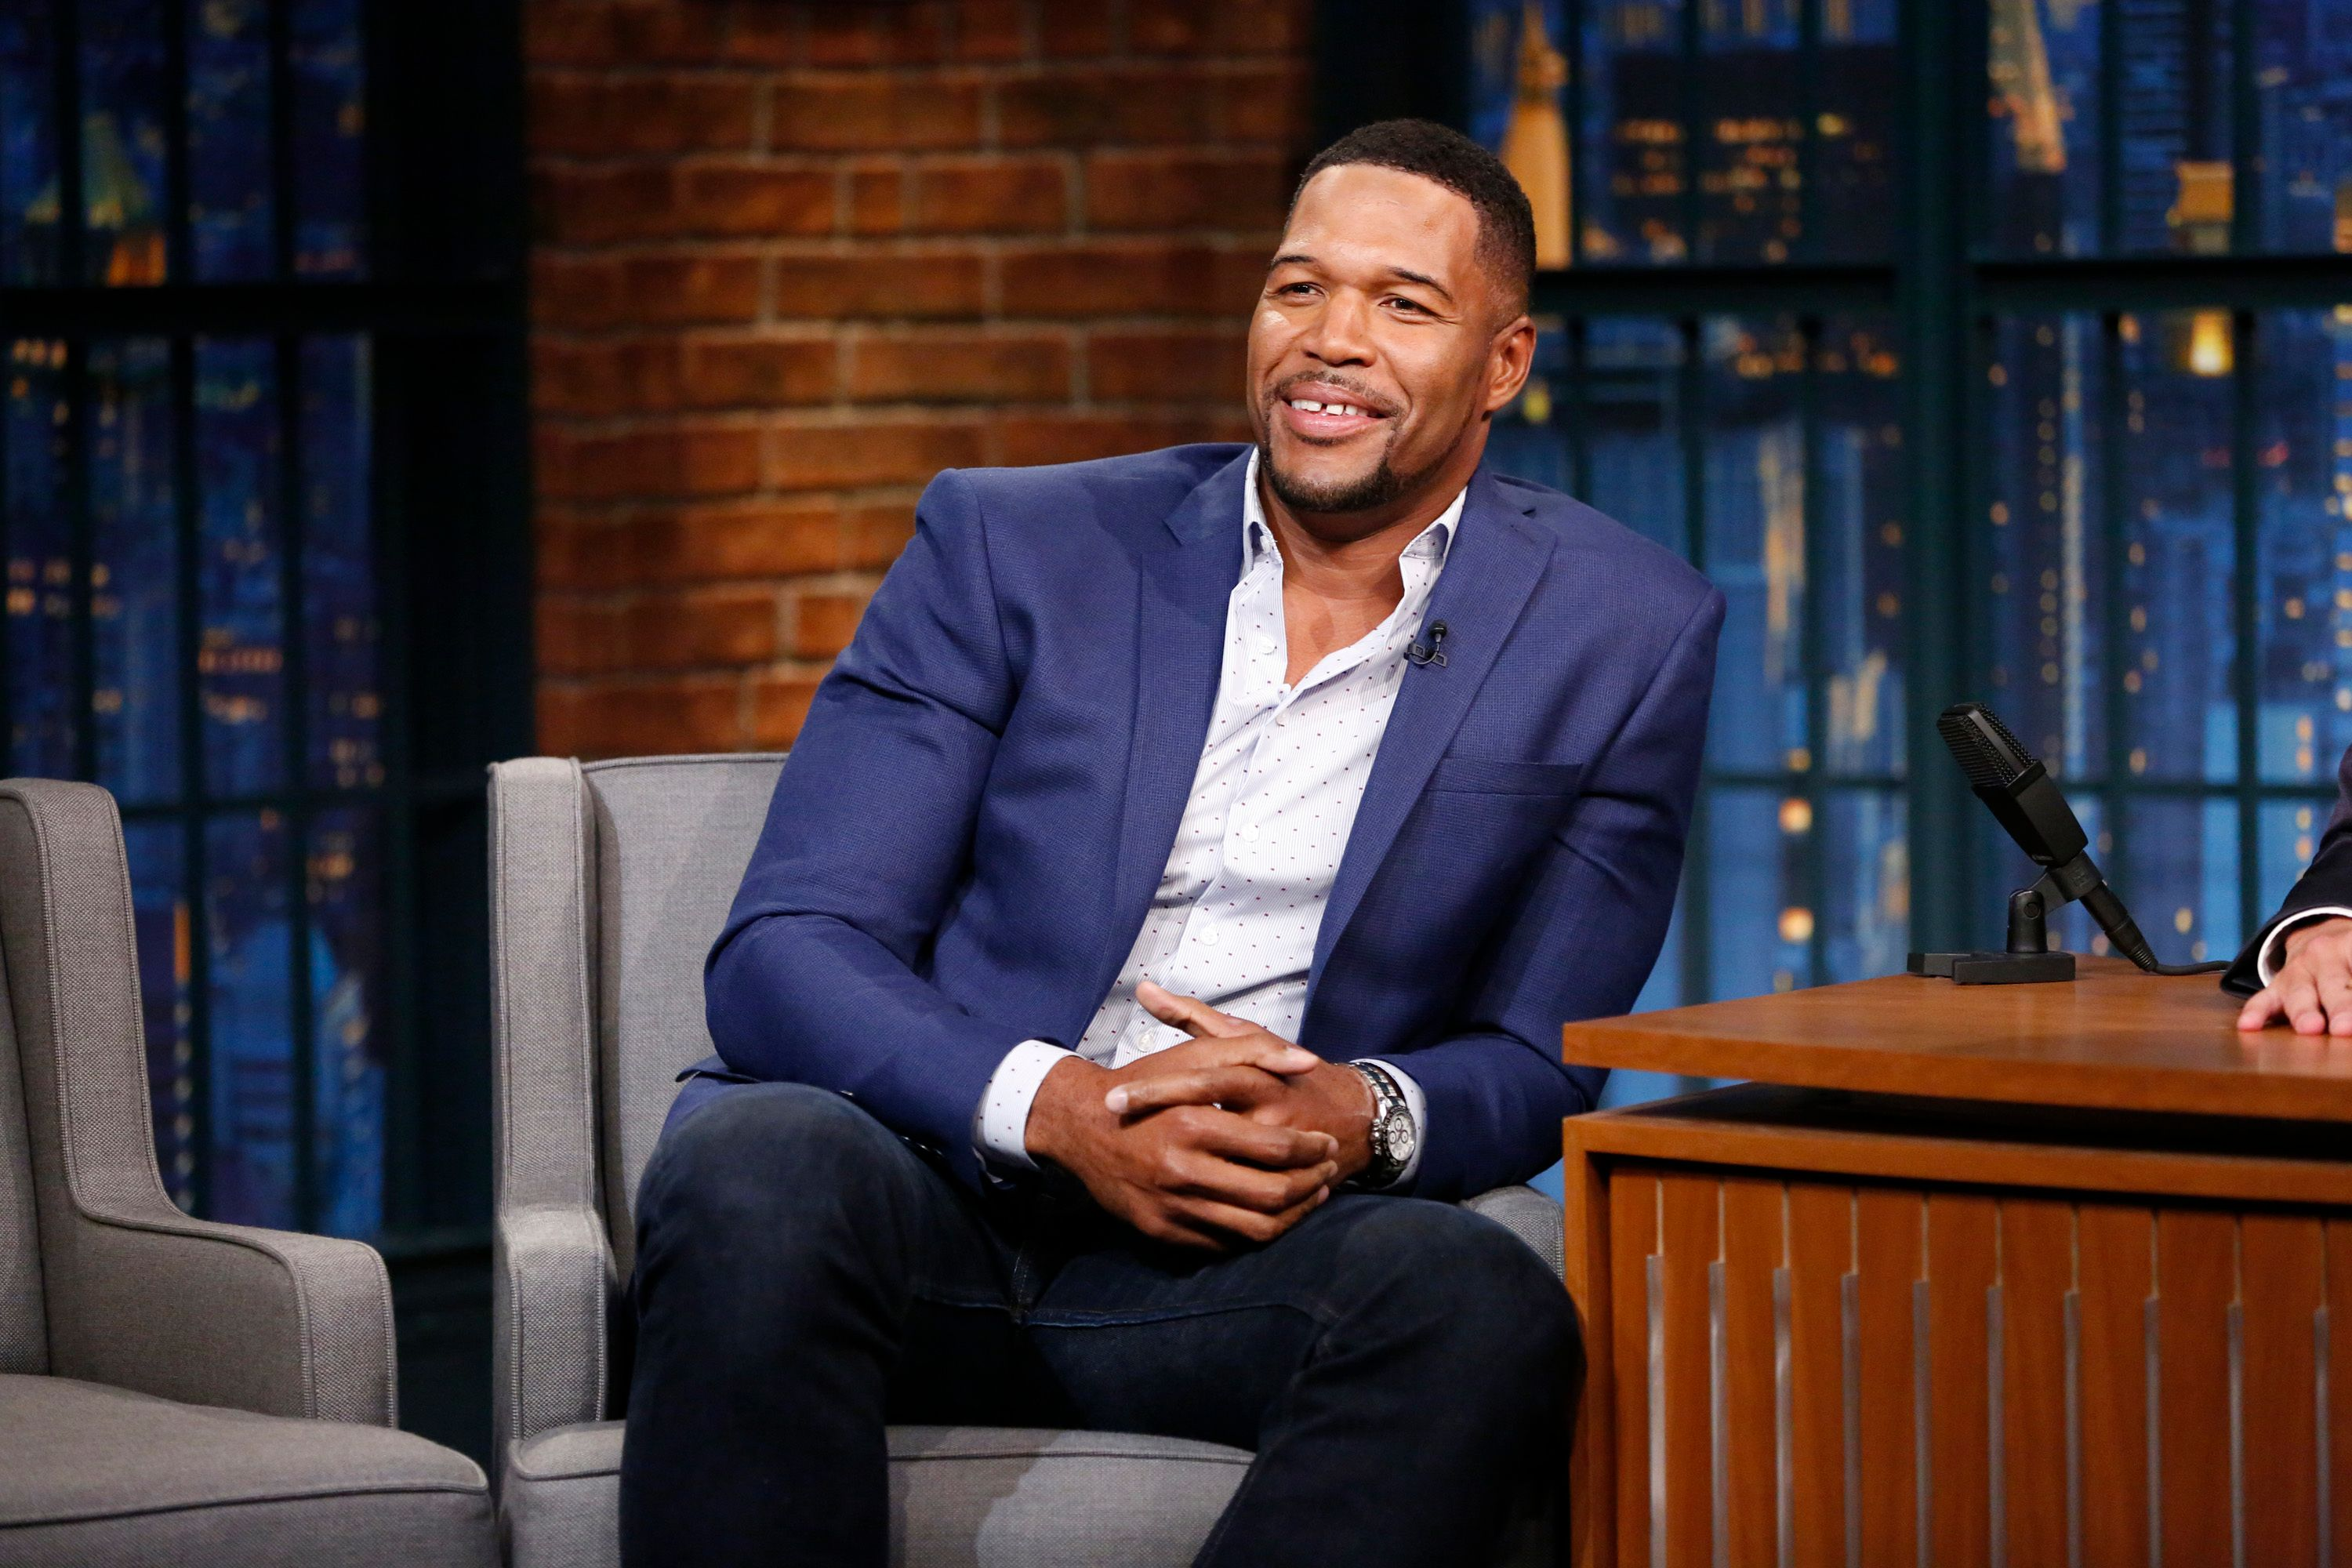 Michael Strahan during an interview on October 2, 2017 | Photo: Getty Images